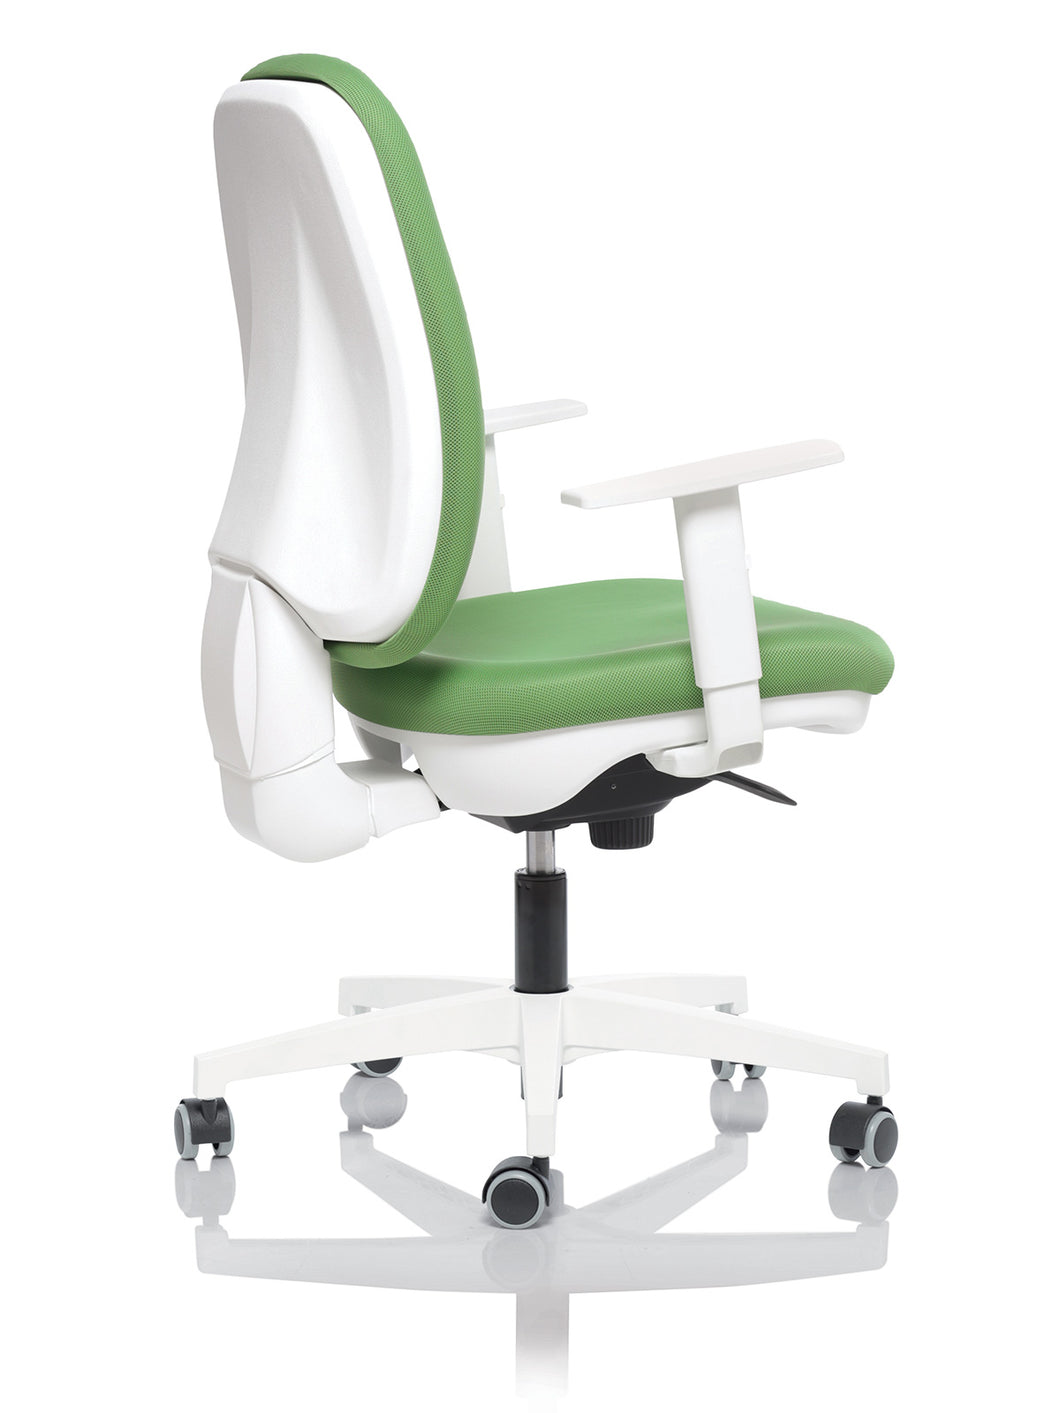 OP24-Hours - Synchron 24 Hour Chair. (price includes free pair of 2d arms and price is inclusive of VAT)